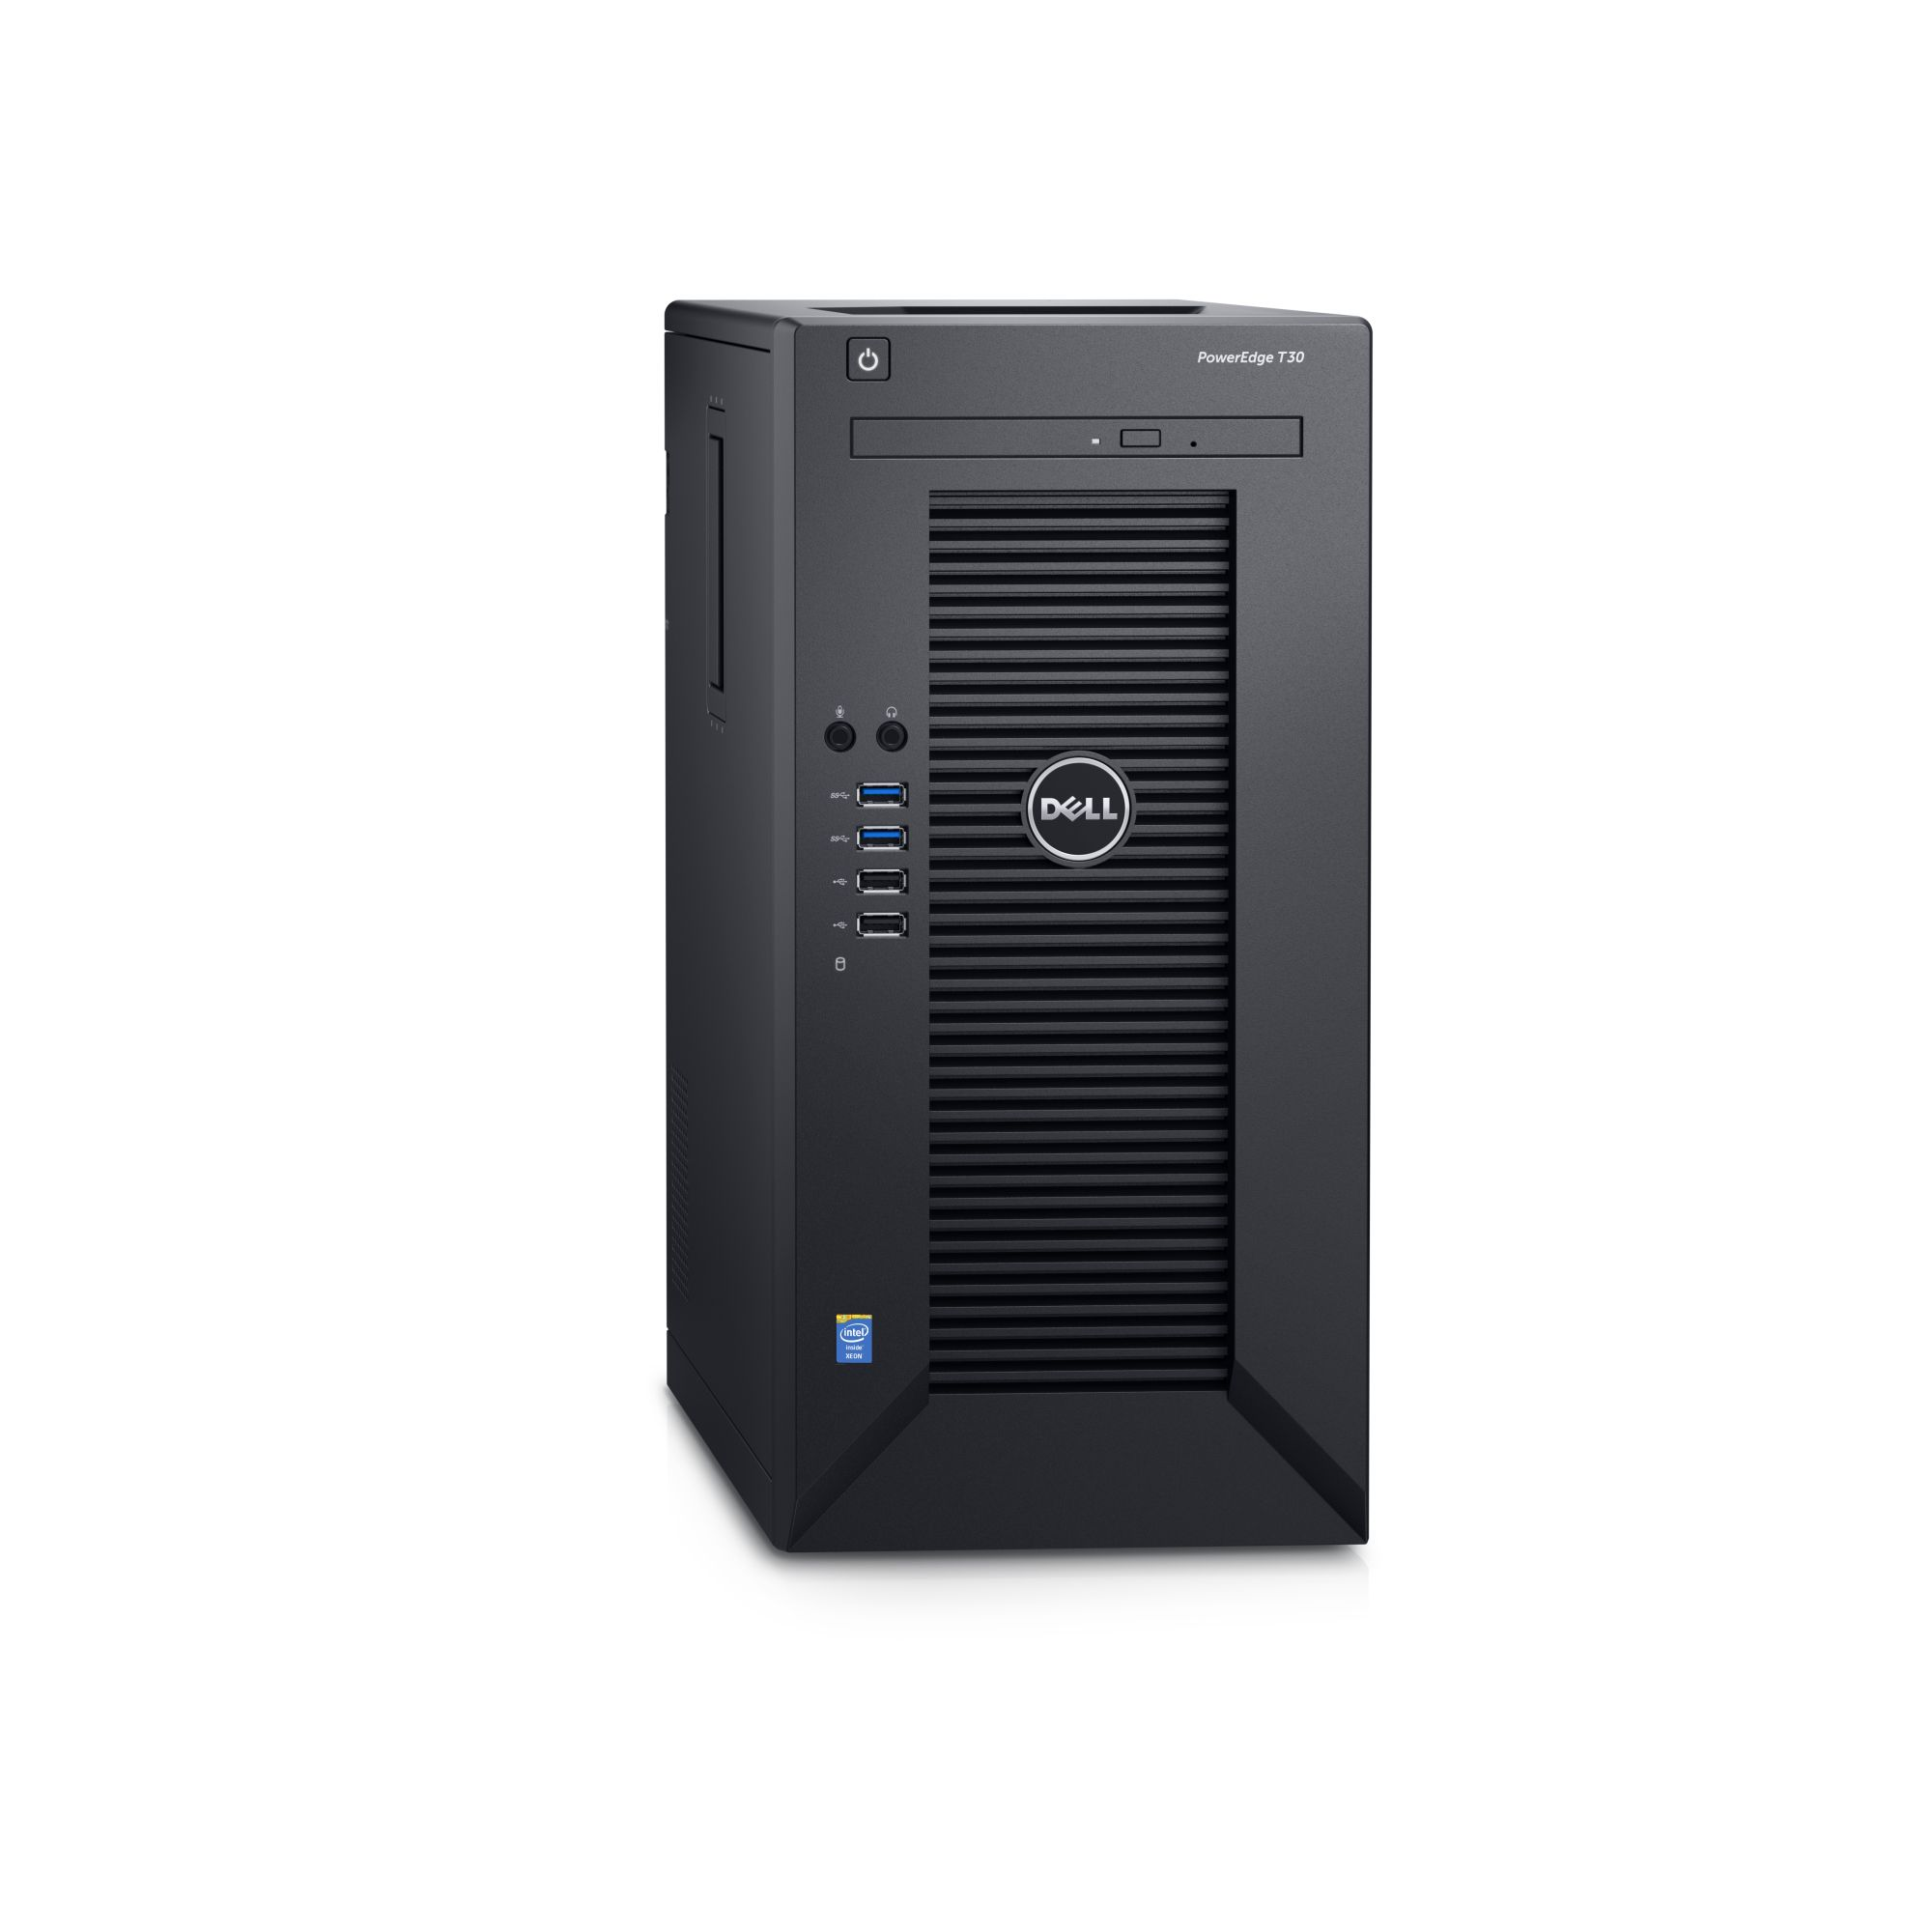 Dell PowerEdge T30 E3-1225 v5/16GB/2x1TB SATA/RAID 1/DVDRW/3xGLAN/290W/3RNBD/Černý